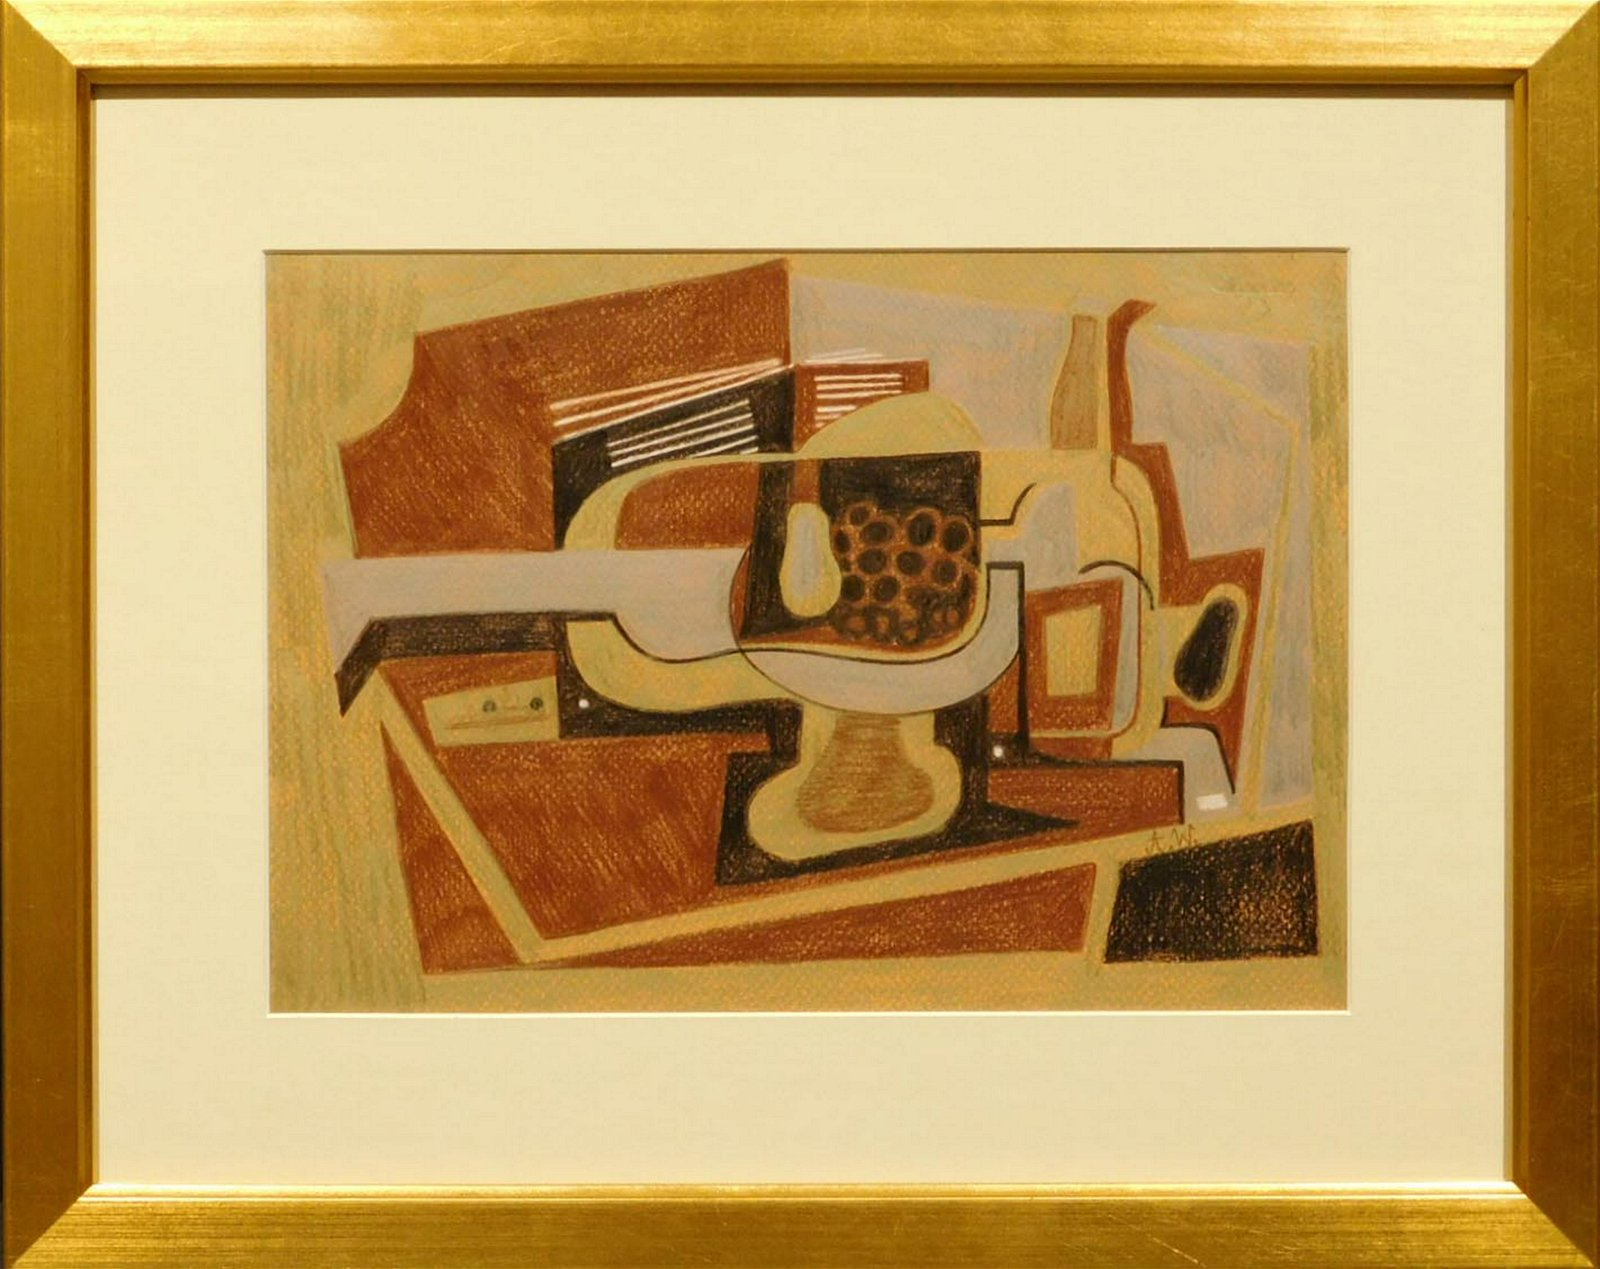 After Juan Gris: Guitar and Bottles in Brown, Silver,